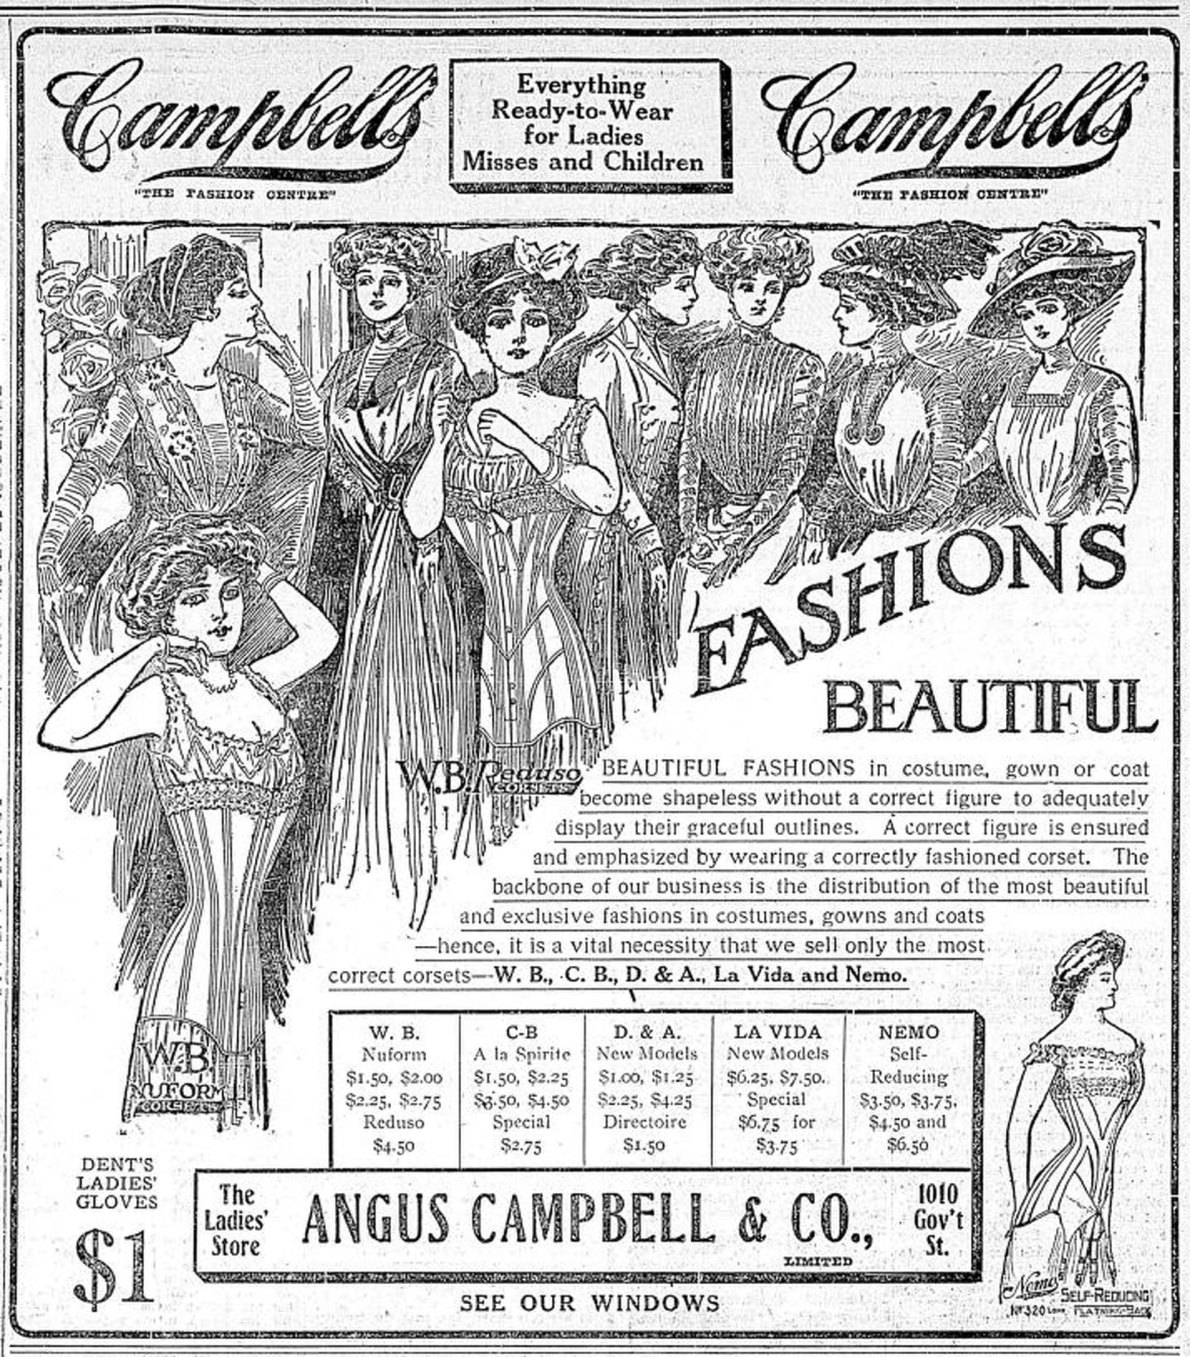 1909 advertisement for Angus Campbell & Co. Ltd., 1010 Government Street (Victoria Online Sightseeing collection)